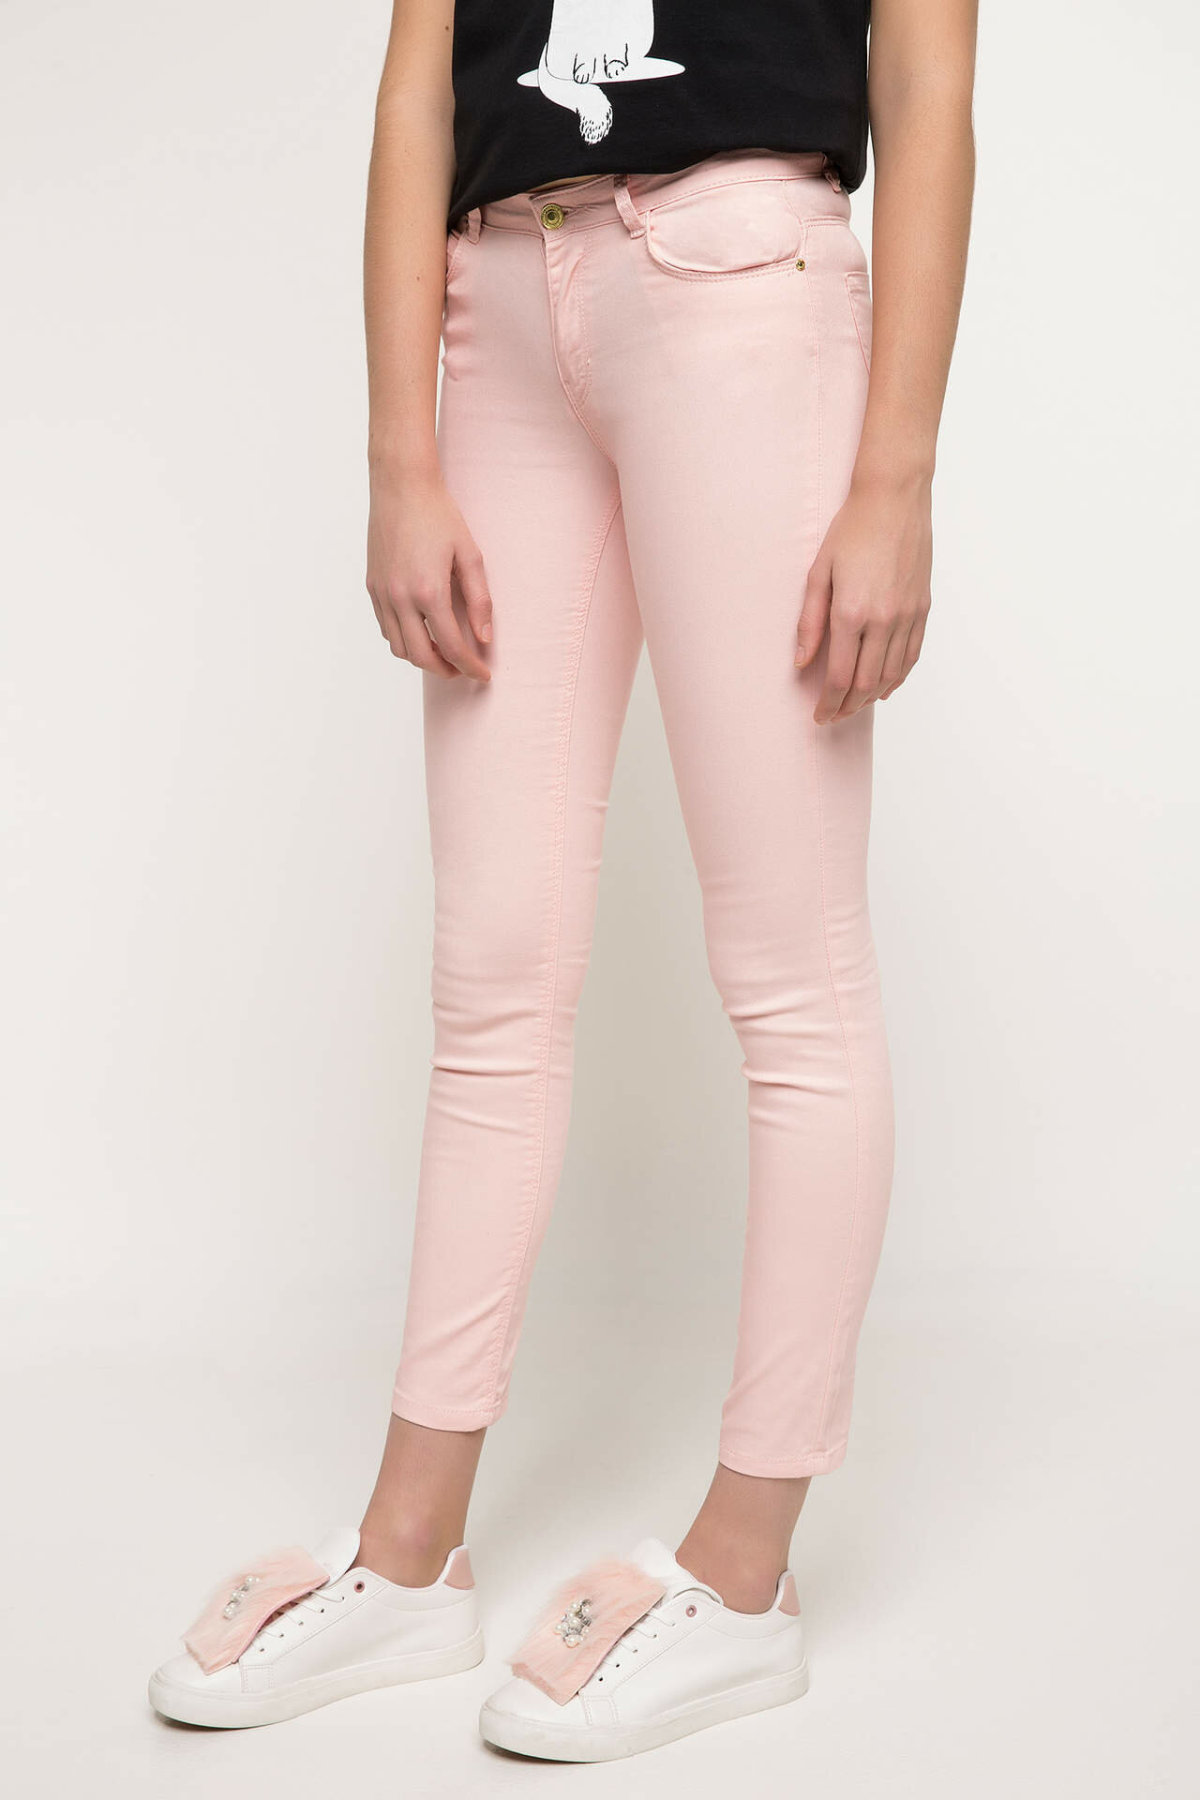 DeFacto Woman Spring Pink Color Long Pants Women Casual Skinny Bottoms Female Fit Body Slim Bottoms Trousers-I3433AZ18SP